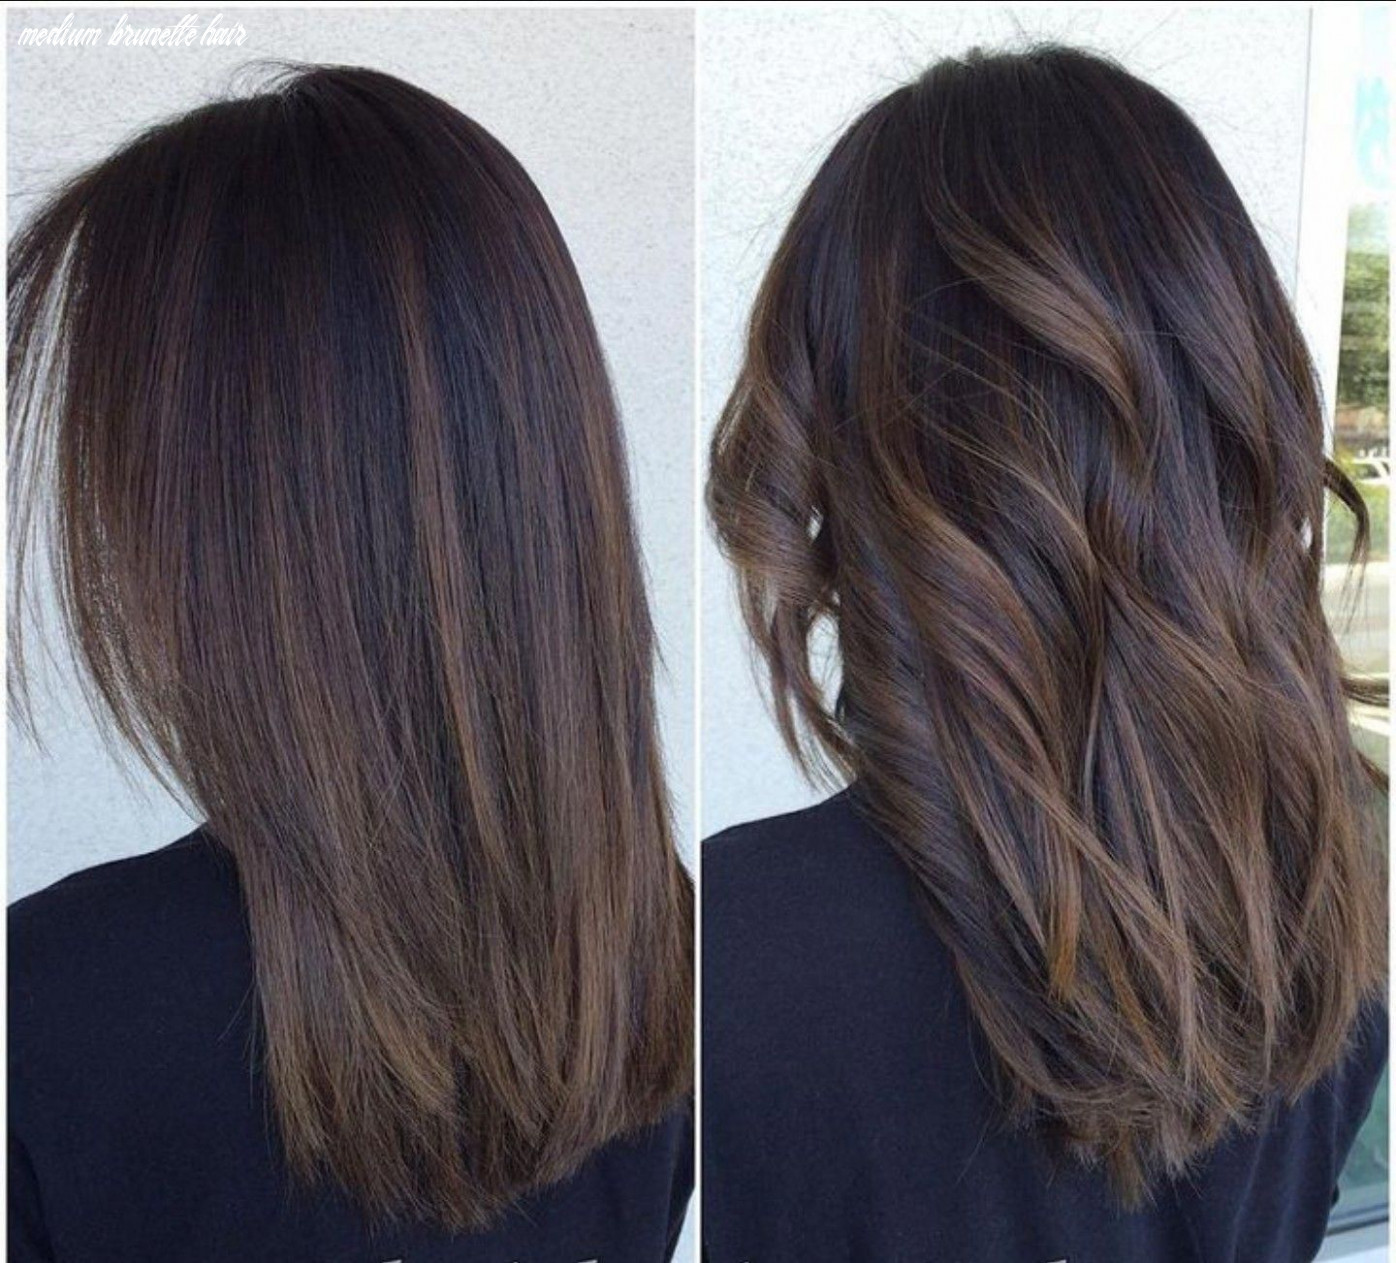 These medium straight balayage hair are trendy